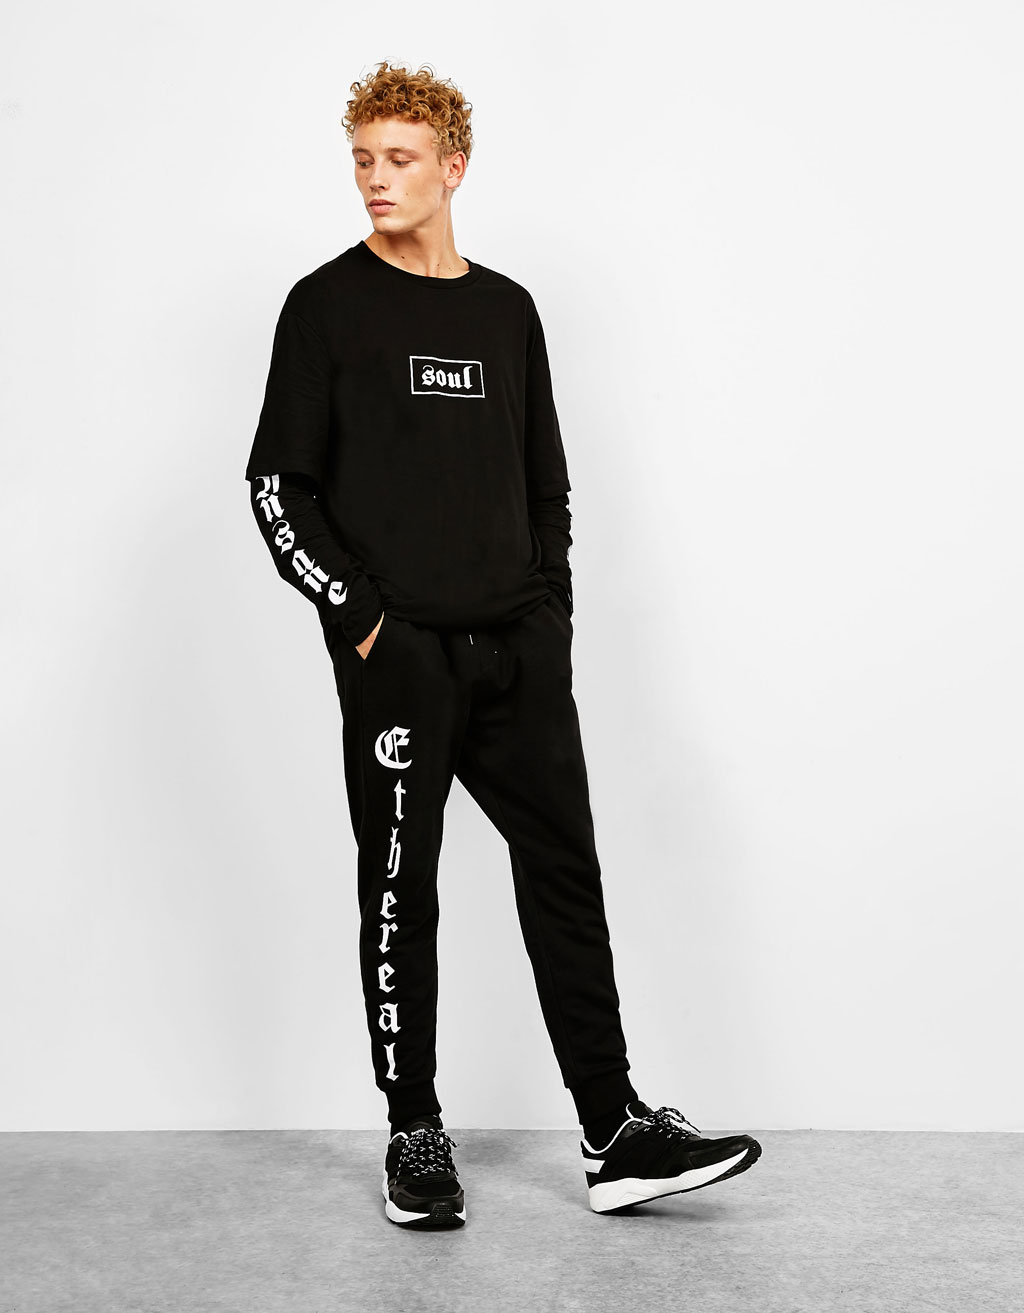 Plush grunge trousers with text down the side